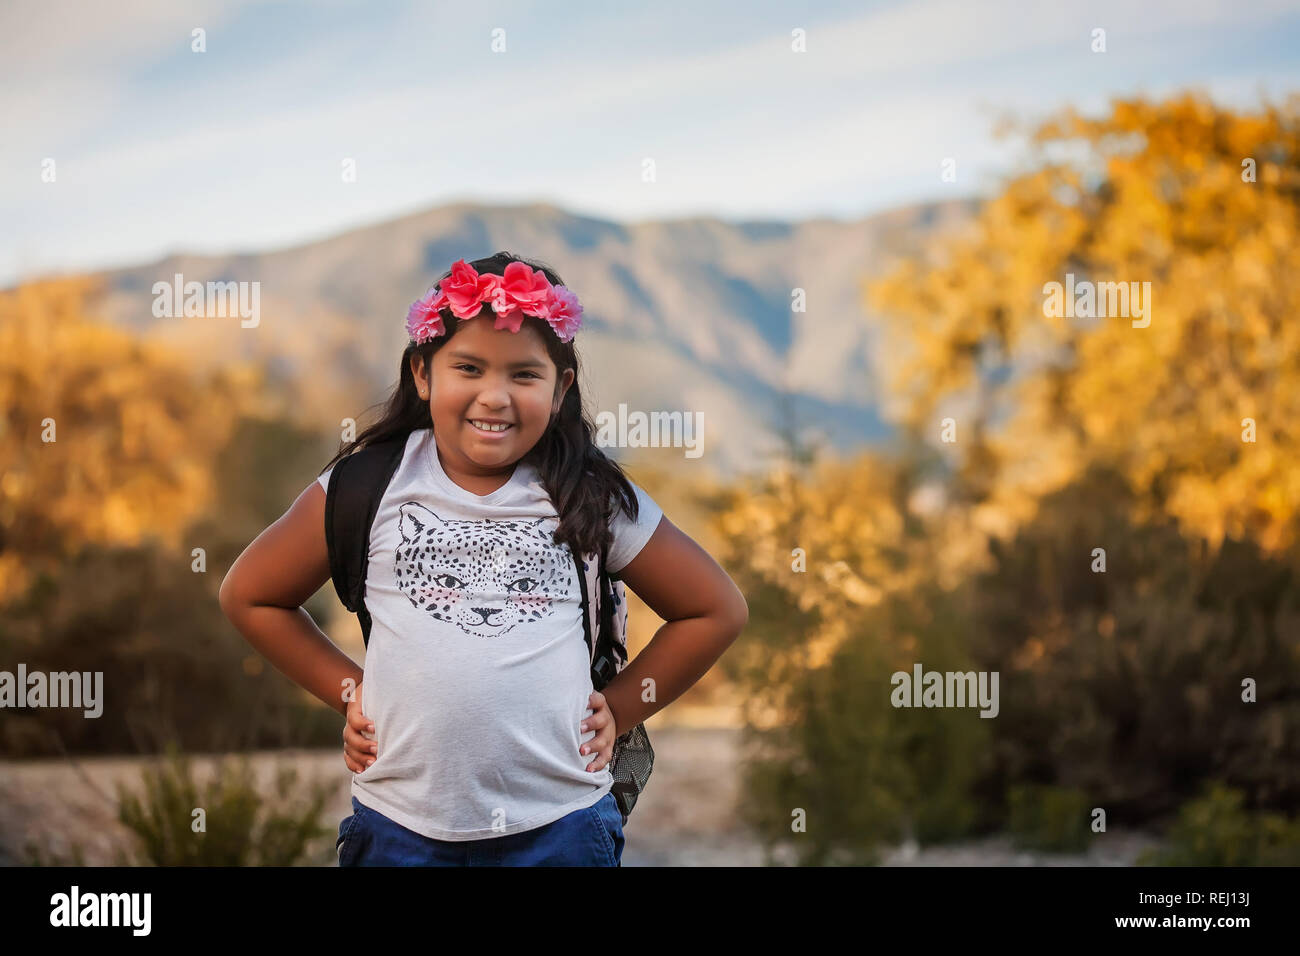 A pre teen female student wearing a backpack during a school field trip in California. - Stock Image